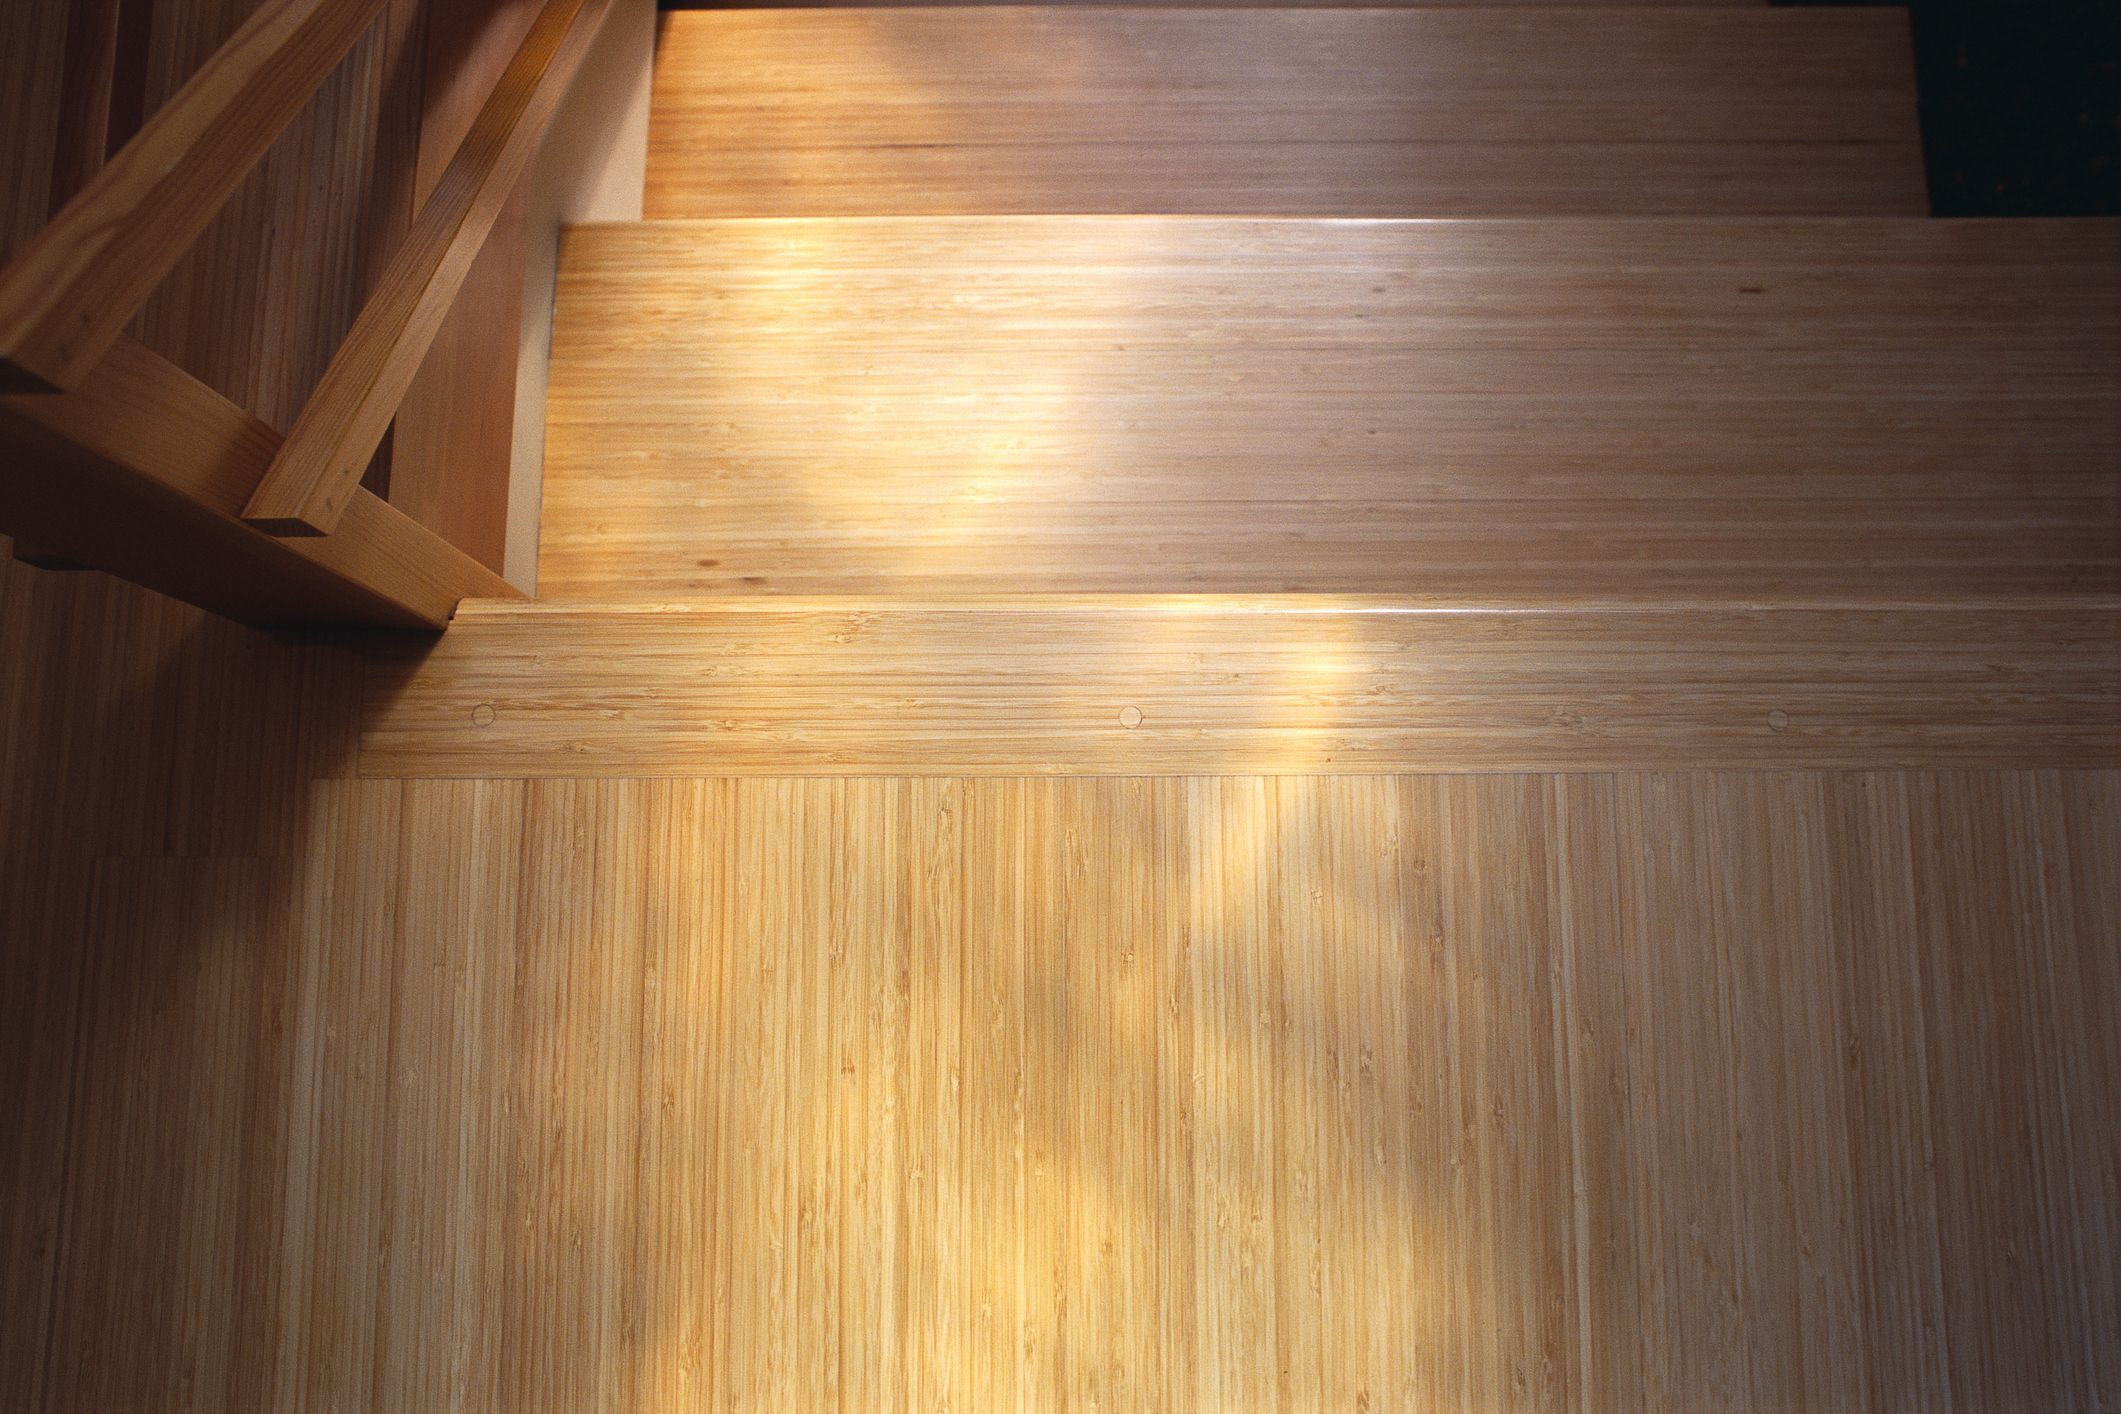 hardwood floor repair denver co of bamboo flooring issues and problems regarding gettyimages 588174422 59ffa192e258f800370dd247